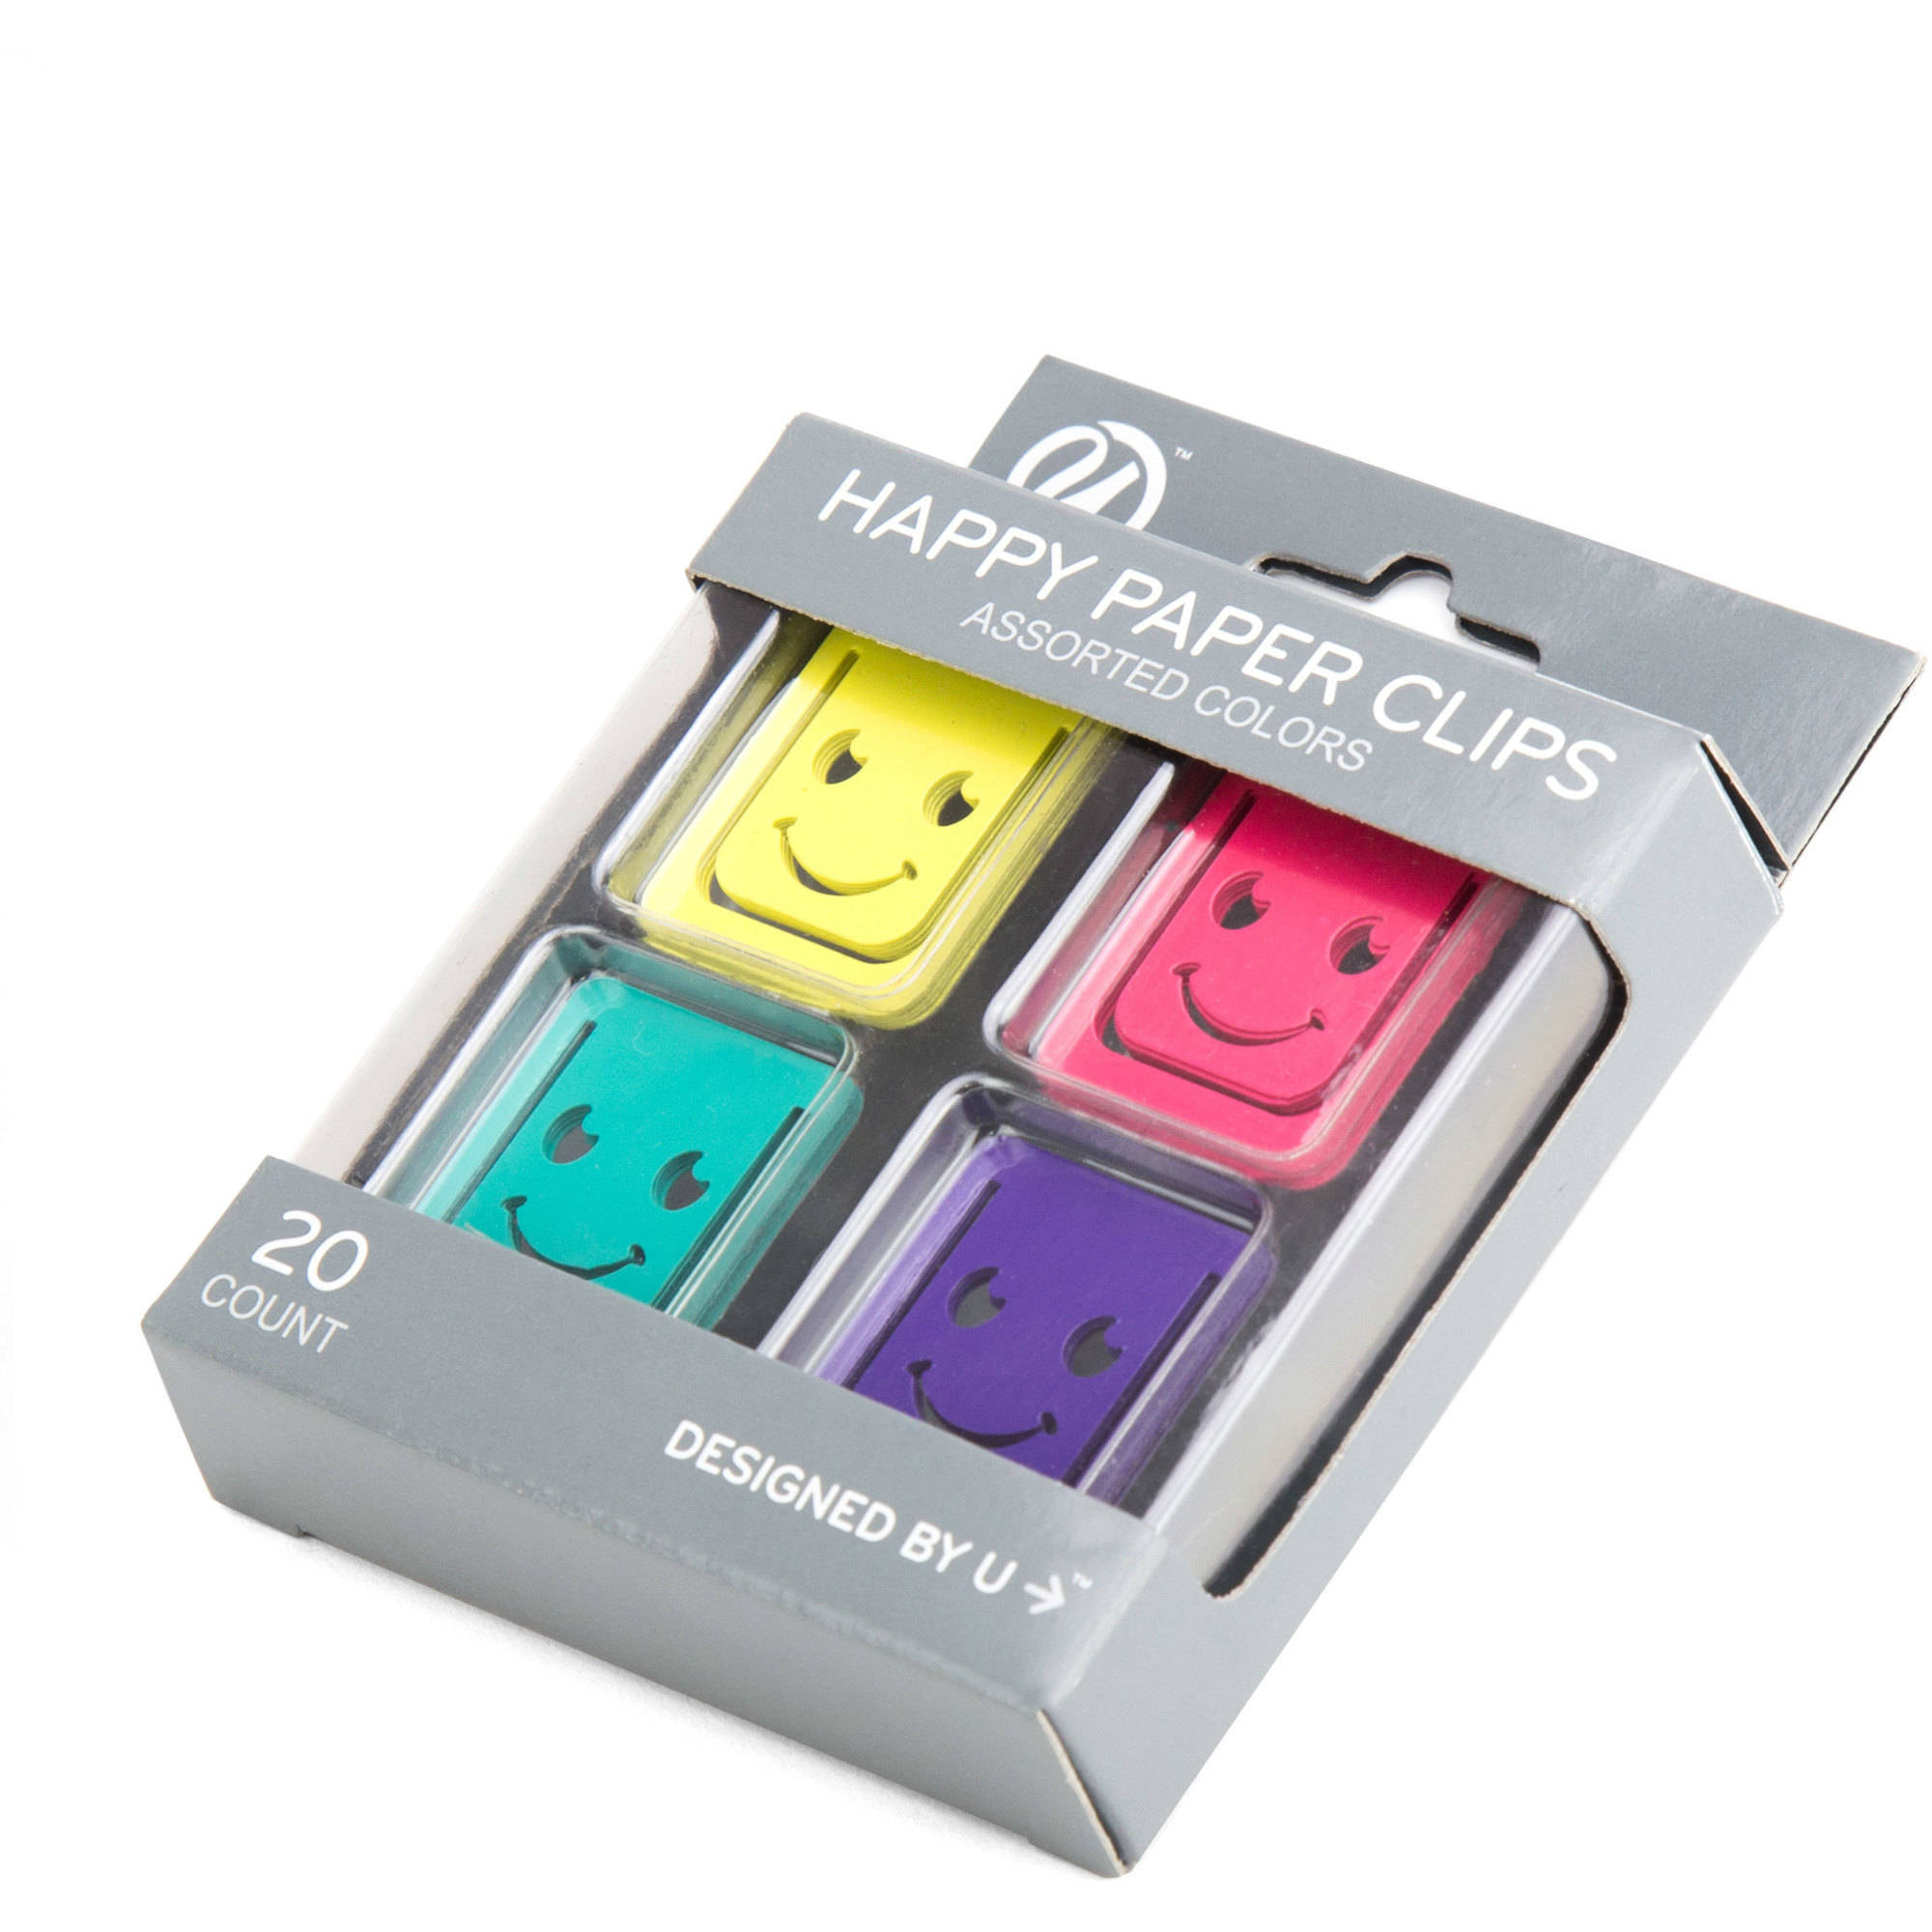 (2 Pack) U Brands Paper Clips, Happy Face Print, Assorted Colors, 20-Count